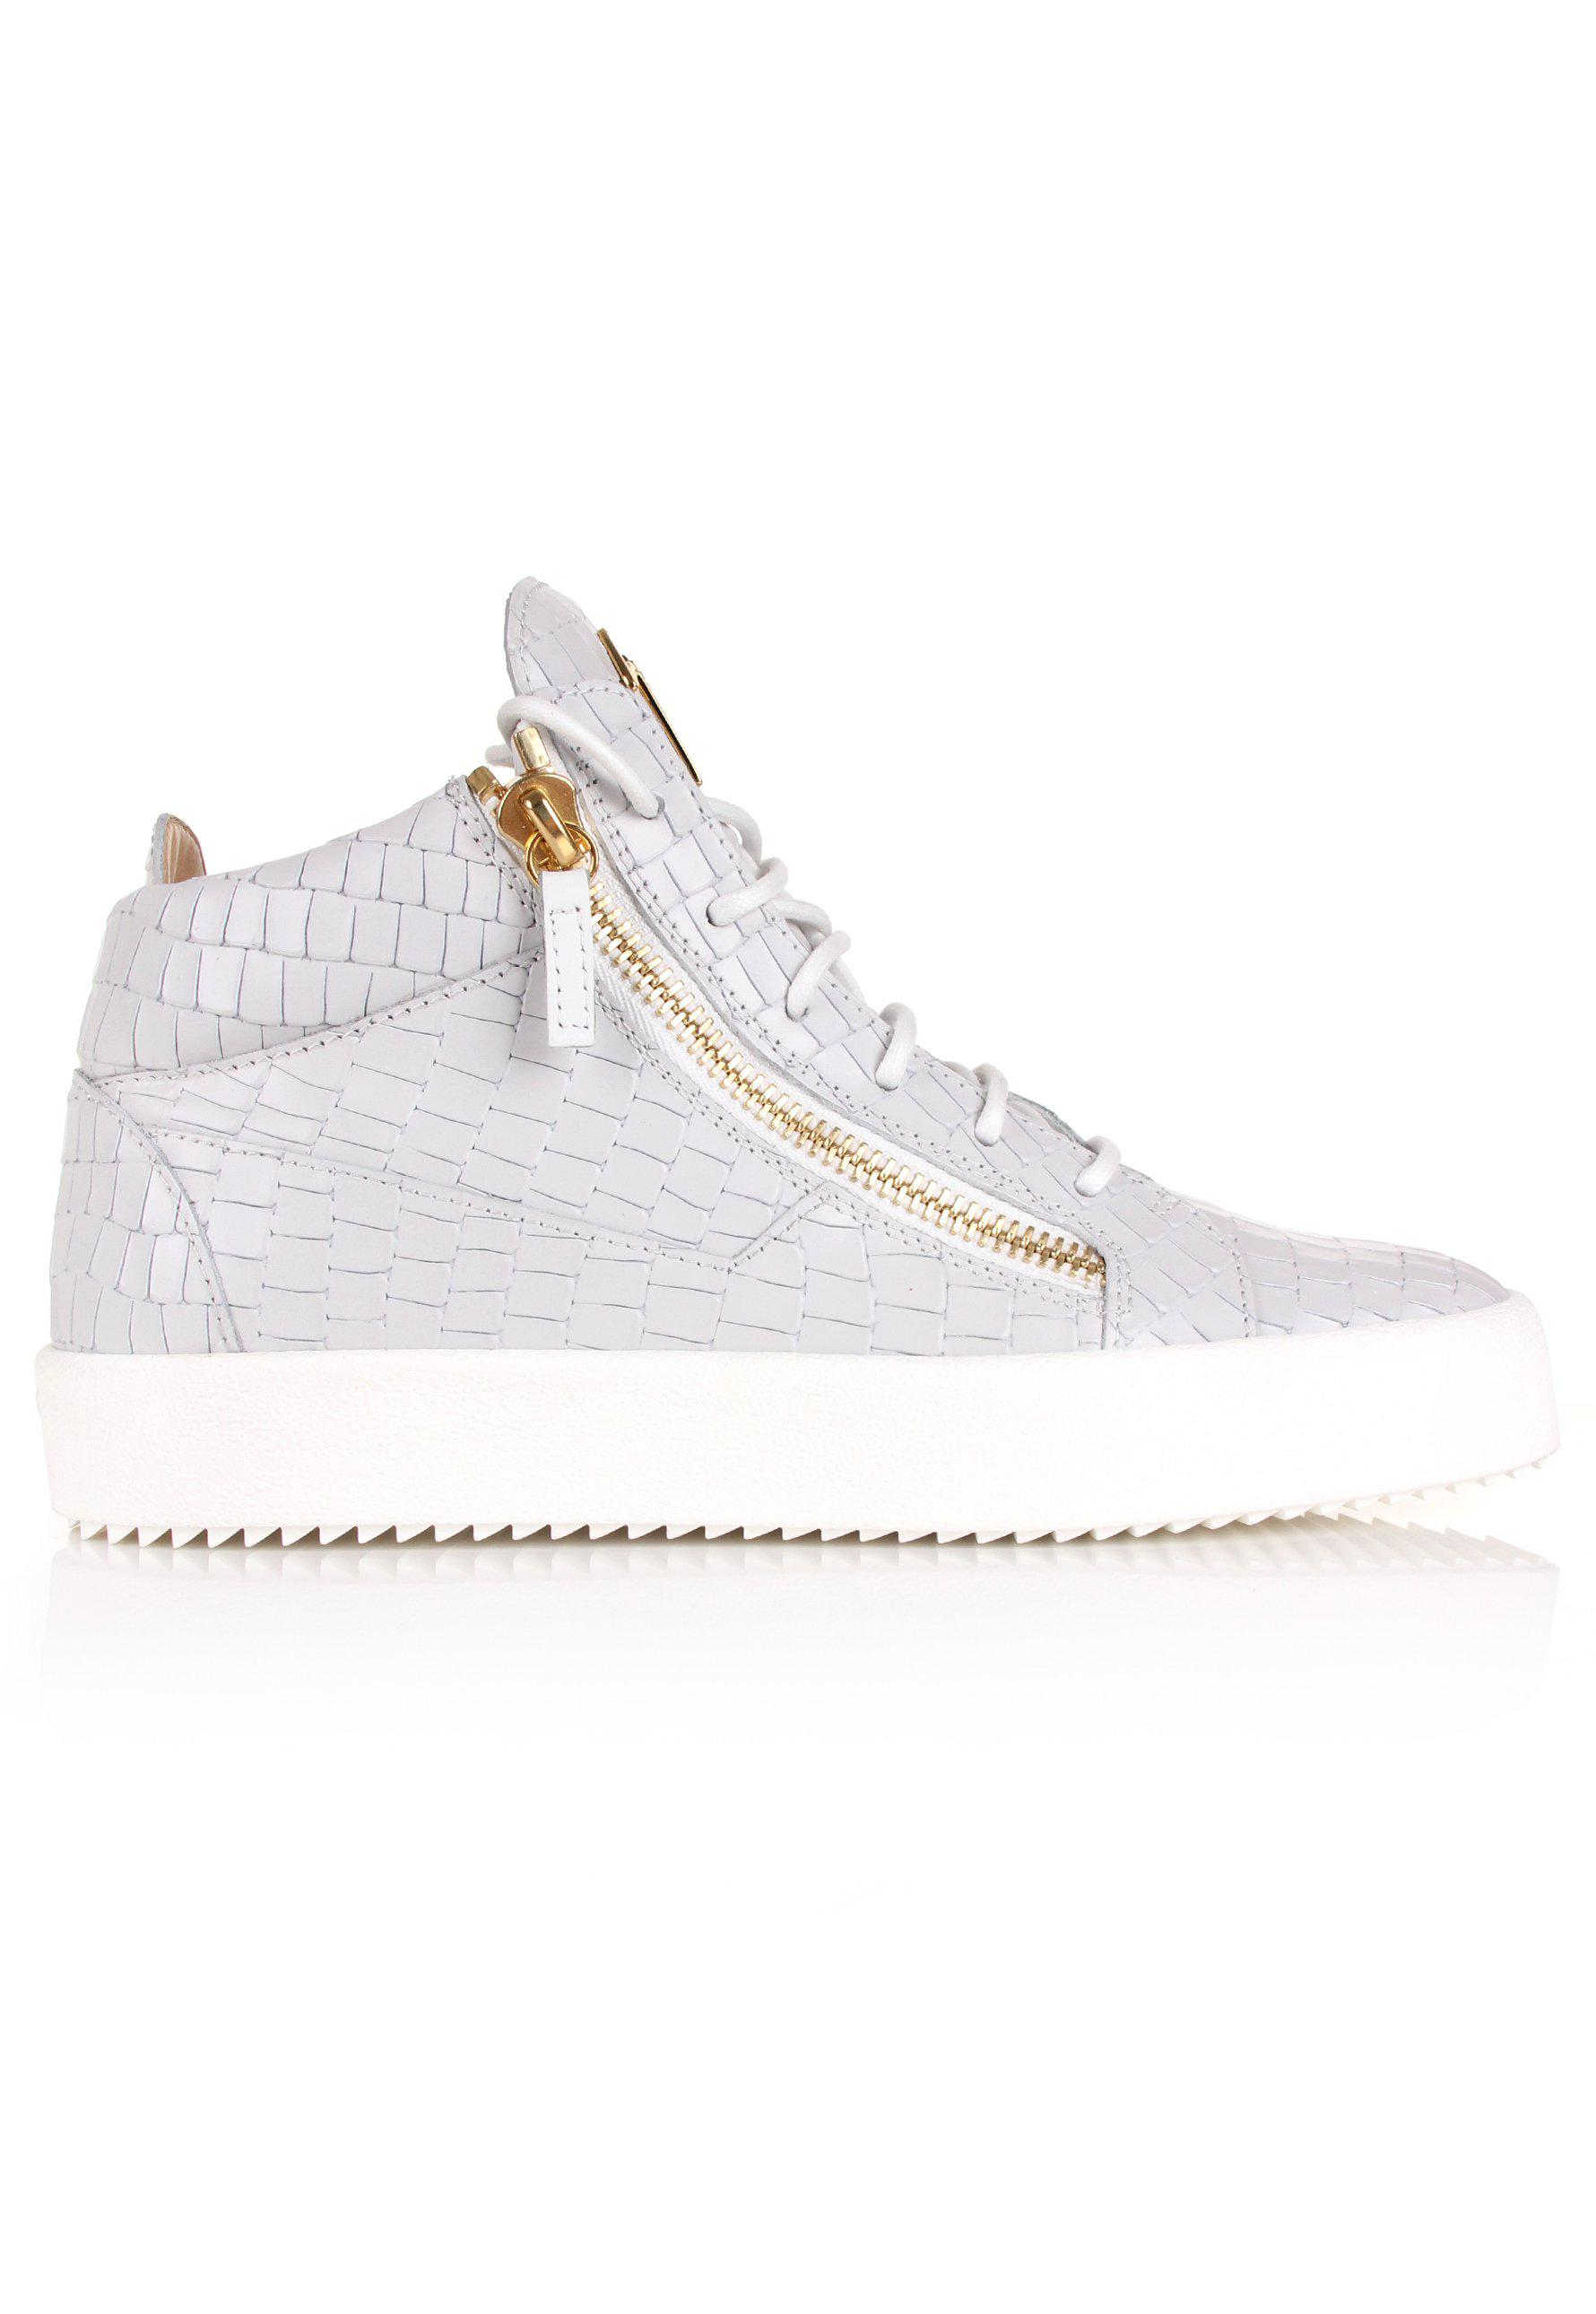 c75394daae70c Giuseppe Zanotti Kriss Logo Mid-top Sneakers White/gold in White for ...